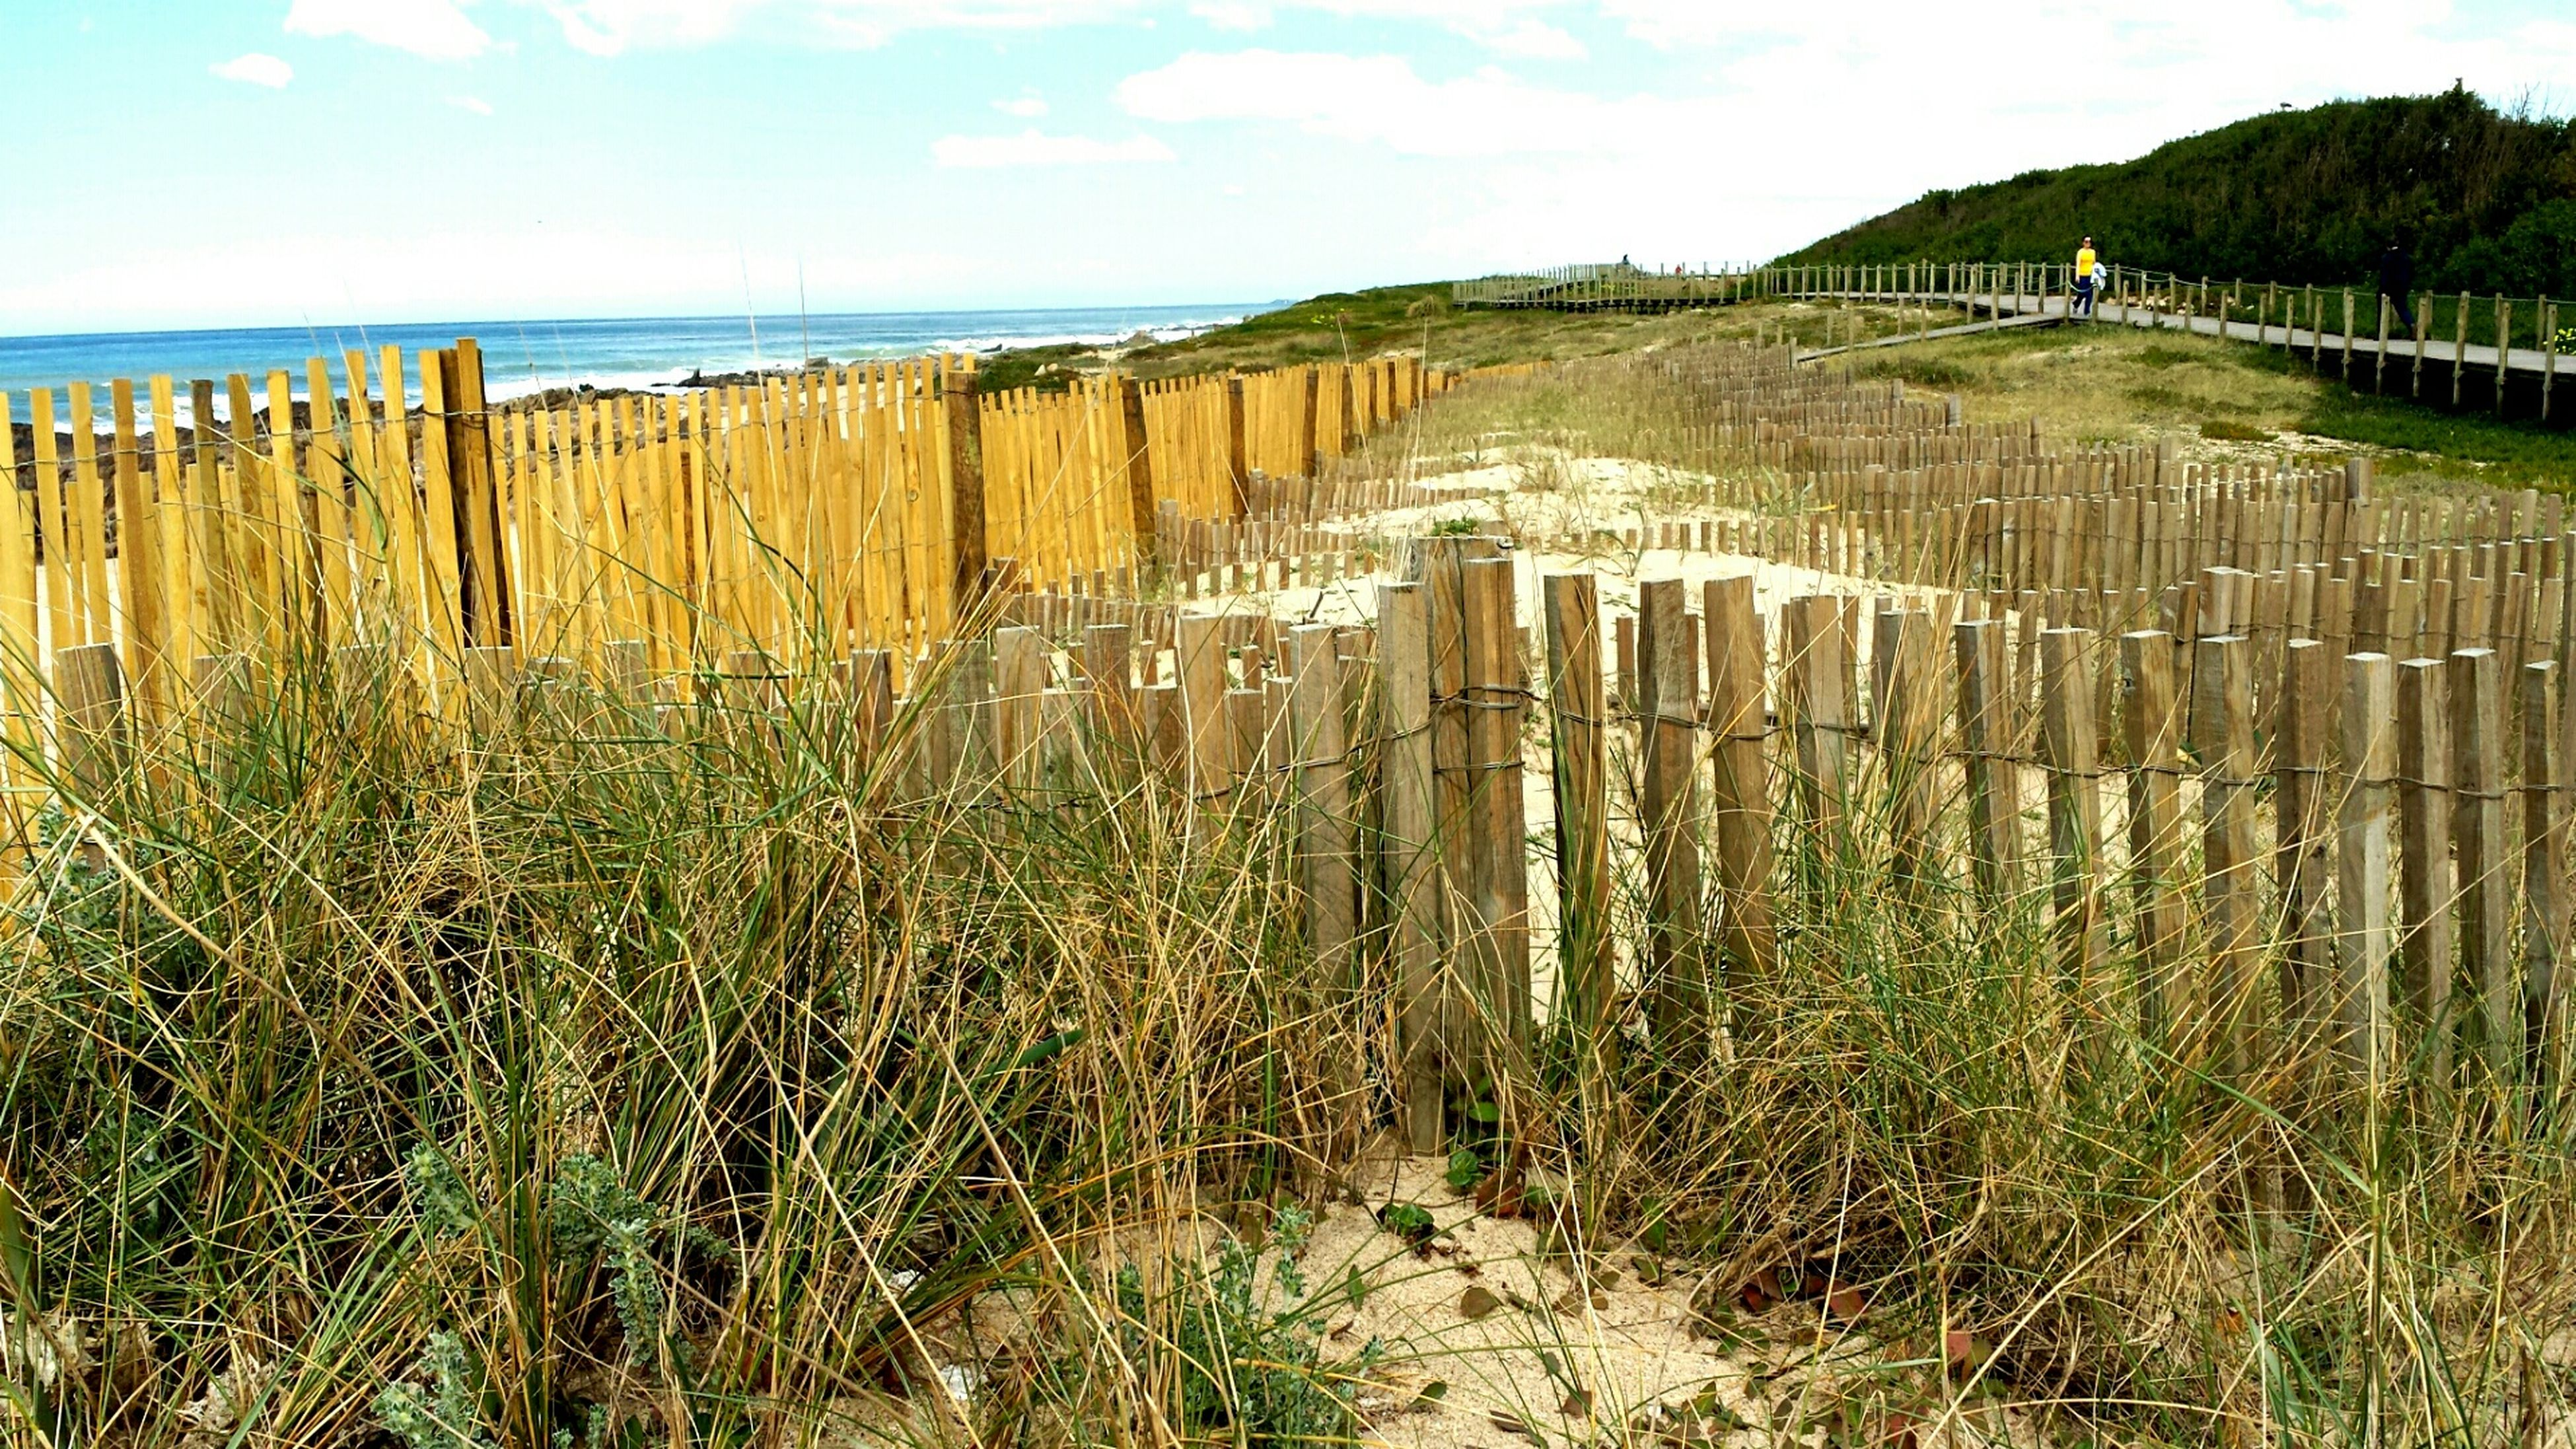 sky, sea, tranquility, tranquil scene, horizon over water, beach, plant, fence, water, scenics, grass, beauty in nature, nature, growth, field, sand, shore, protection, cloud, day